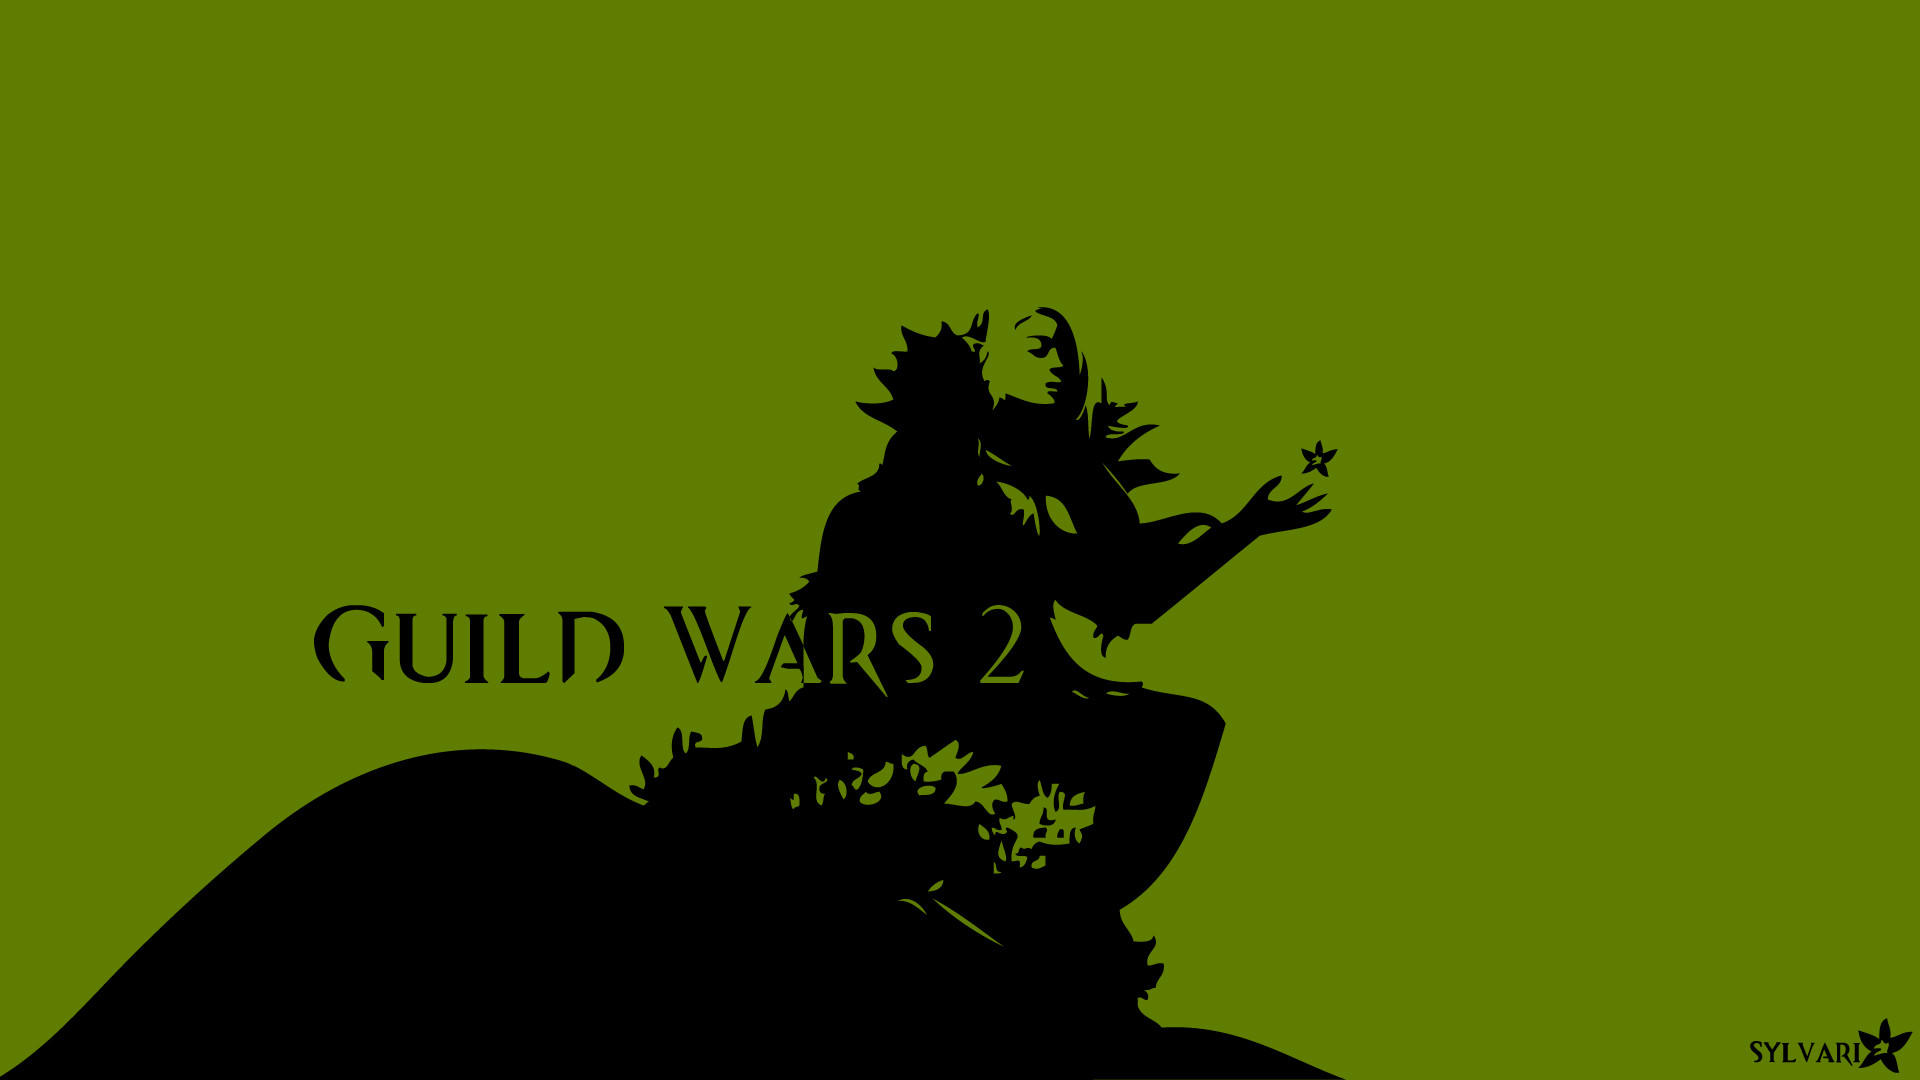 Free guild wars 2 Video Game wallpaper background